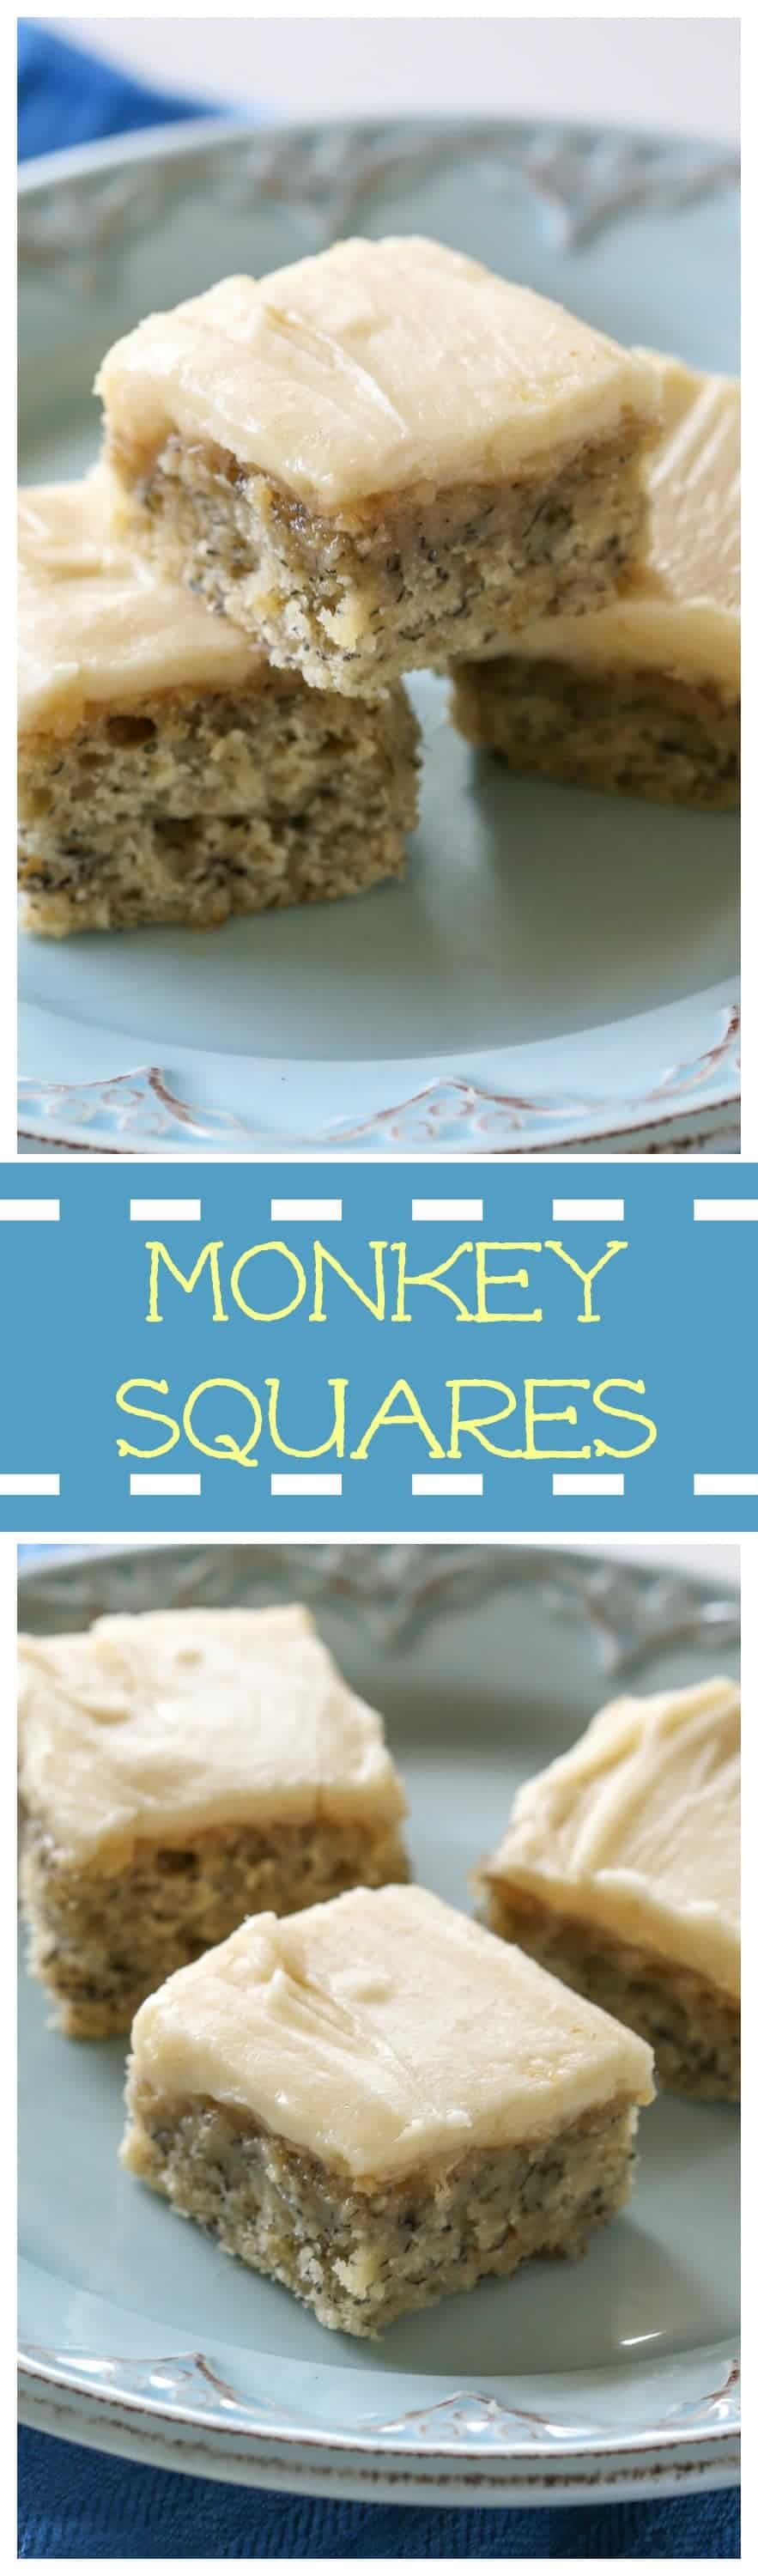 These Monkey Squares are soft and moist banana bread bars with browned butter icing. Think of the best banana bread made into easy to eat bars. This recipe is great for breakfast, brunch, desserts, and potlucks! #Banana #bread #bars #potlucks #dessert #breakfast